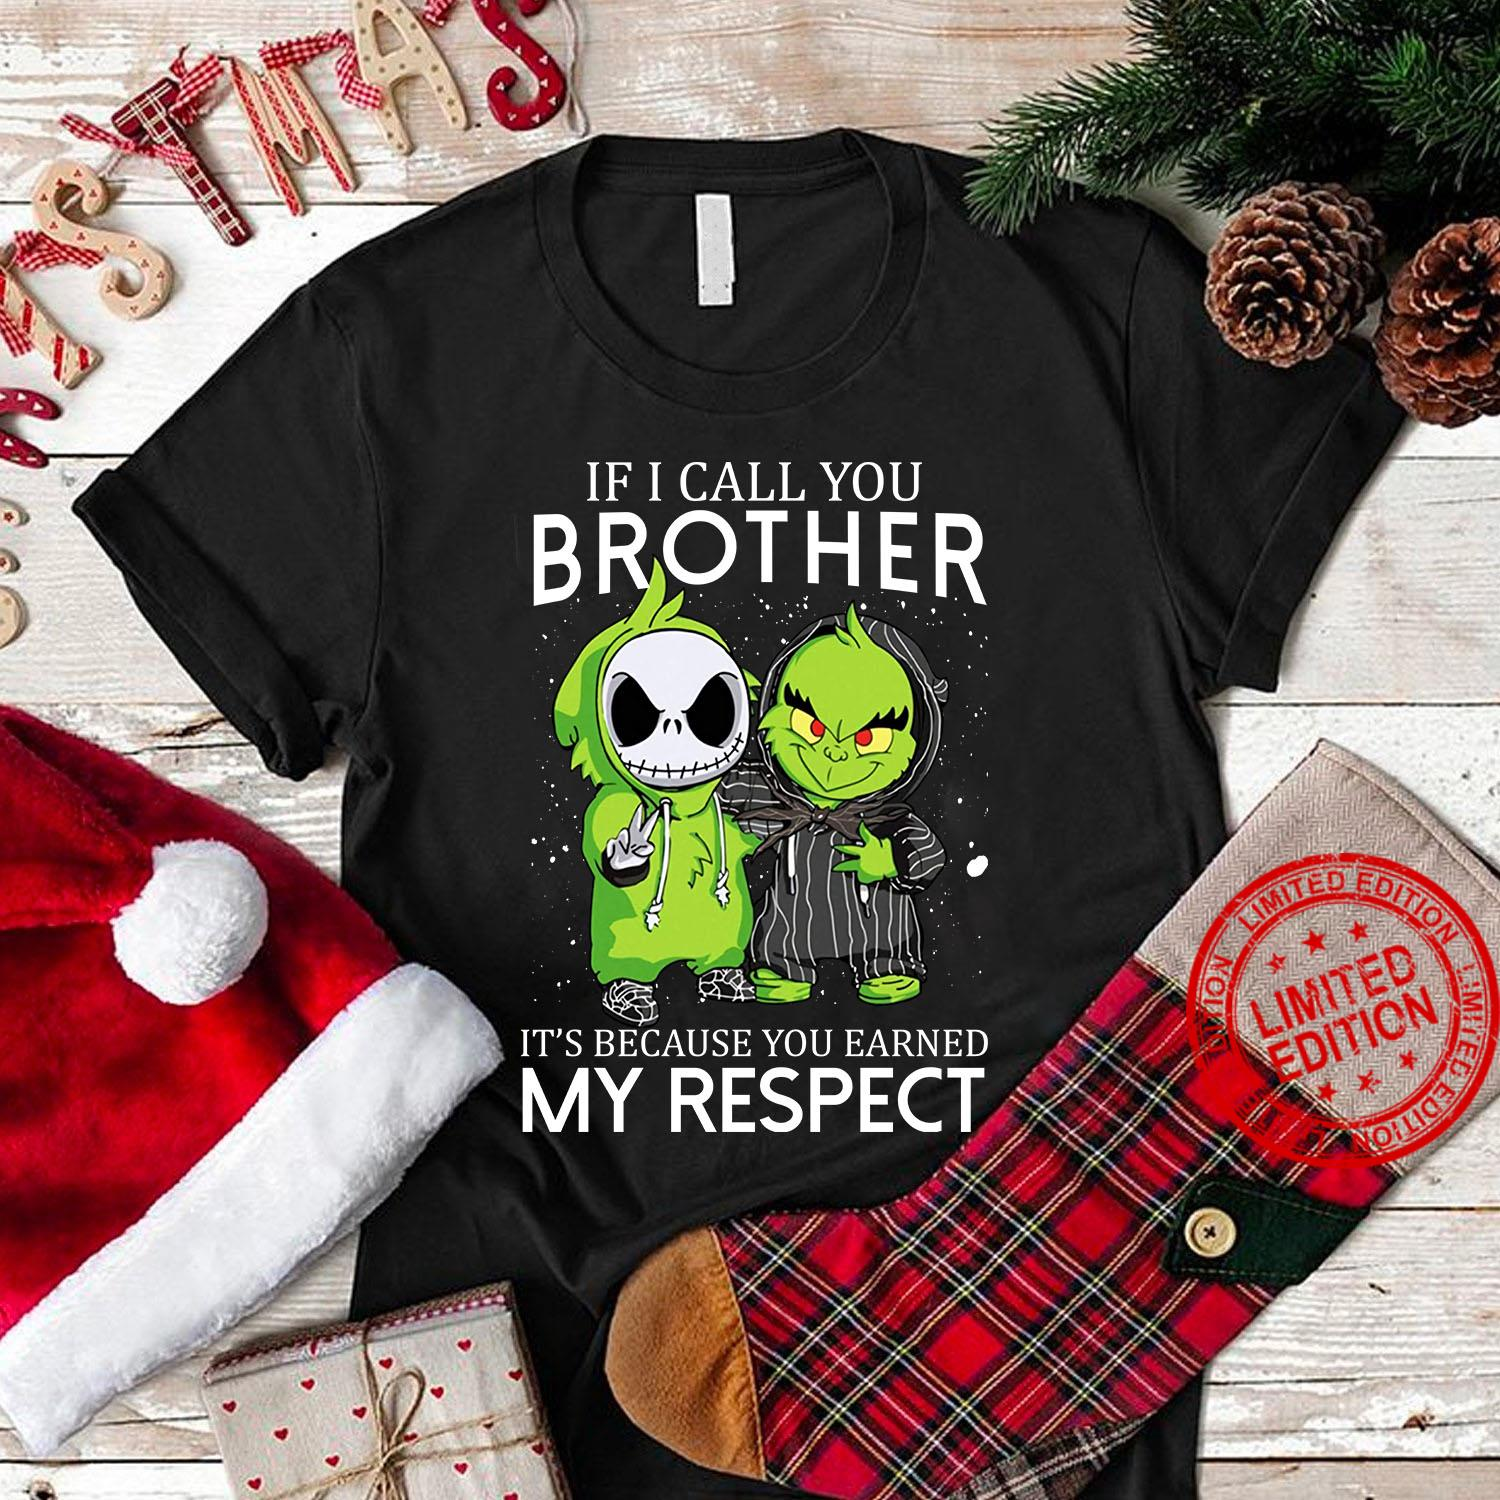 If I Call You Brother It's Because You Earned My Respect Shirt